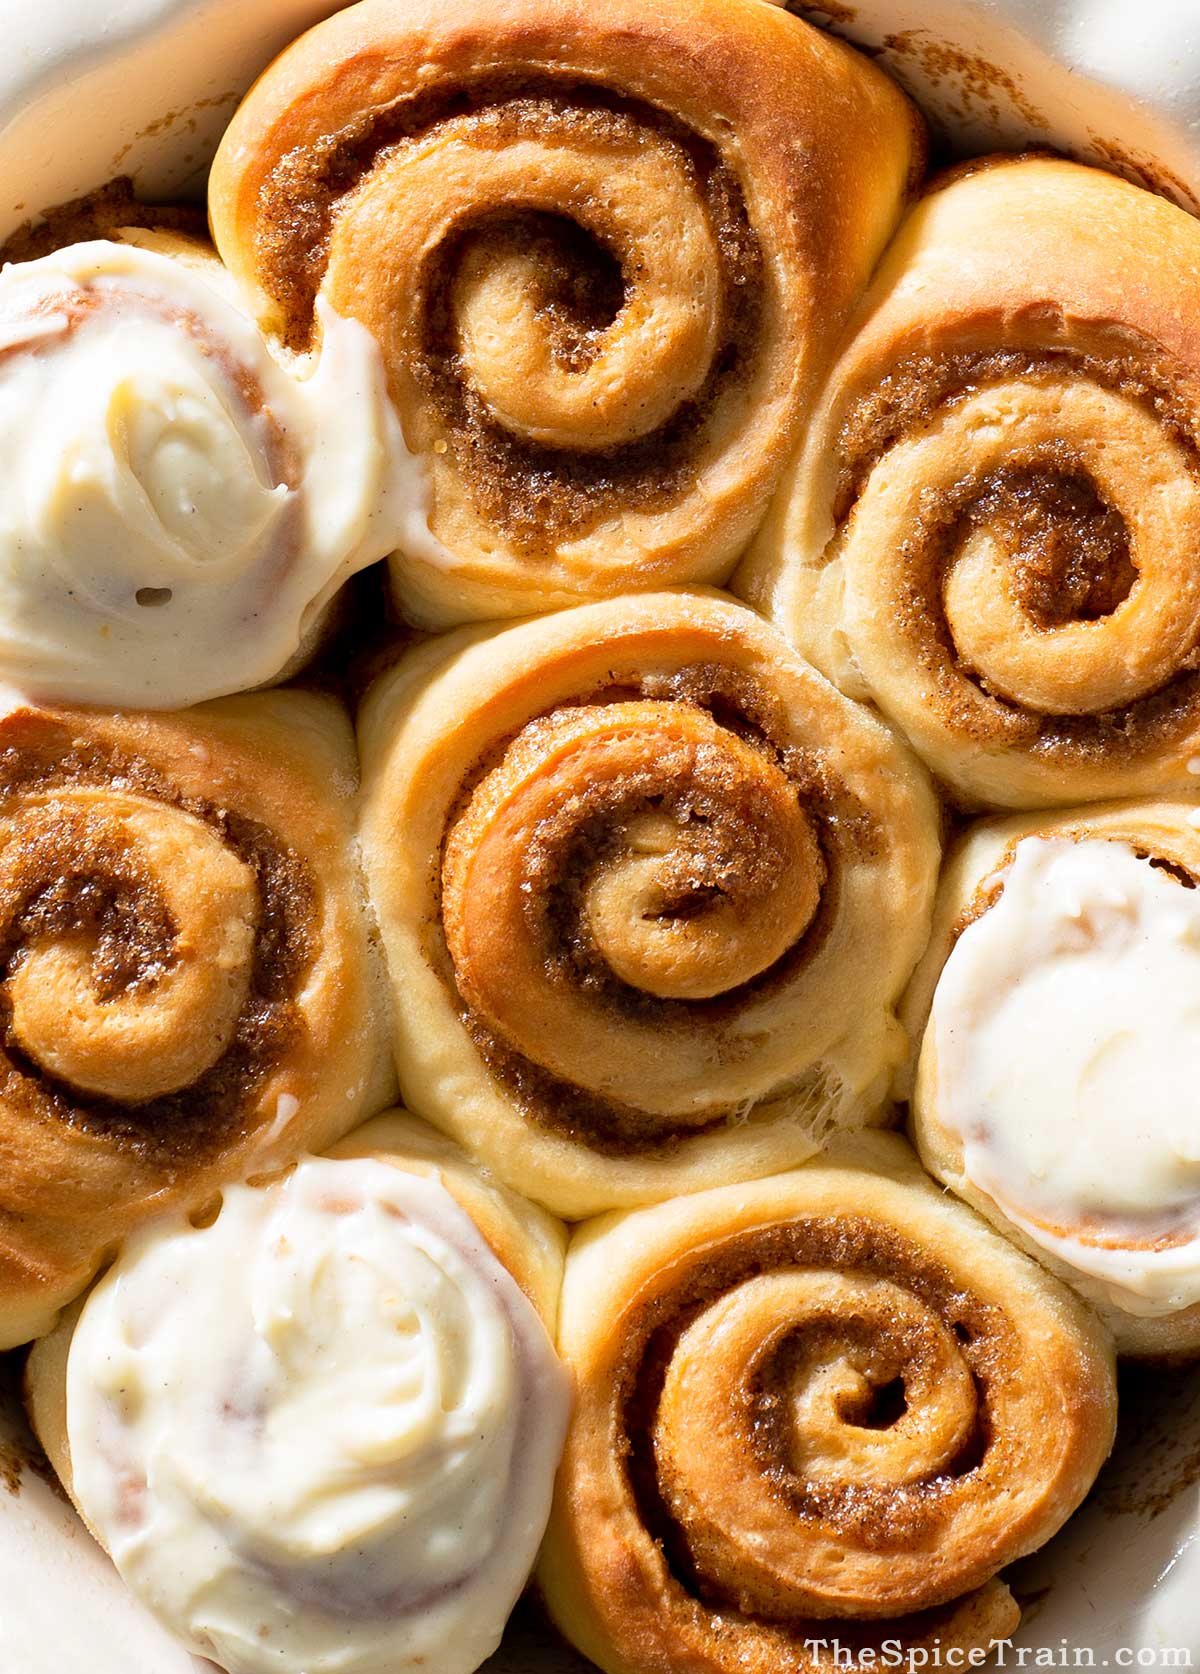 Freshly baked cinnamon rolls with cream cheese frosting.